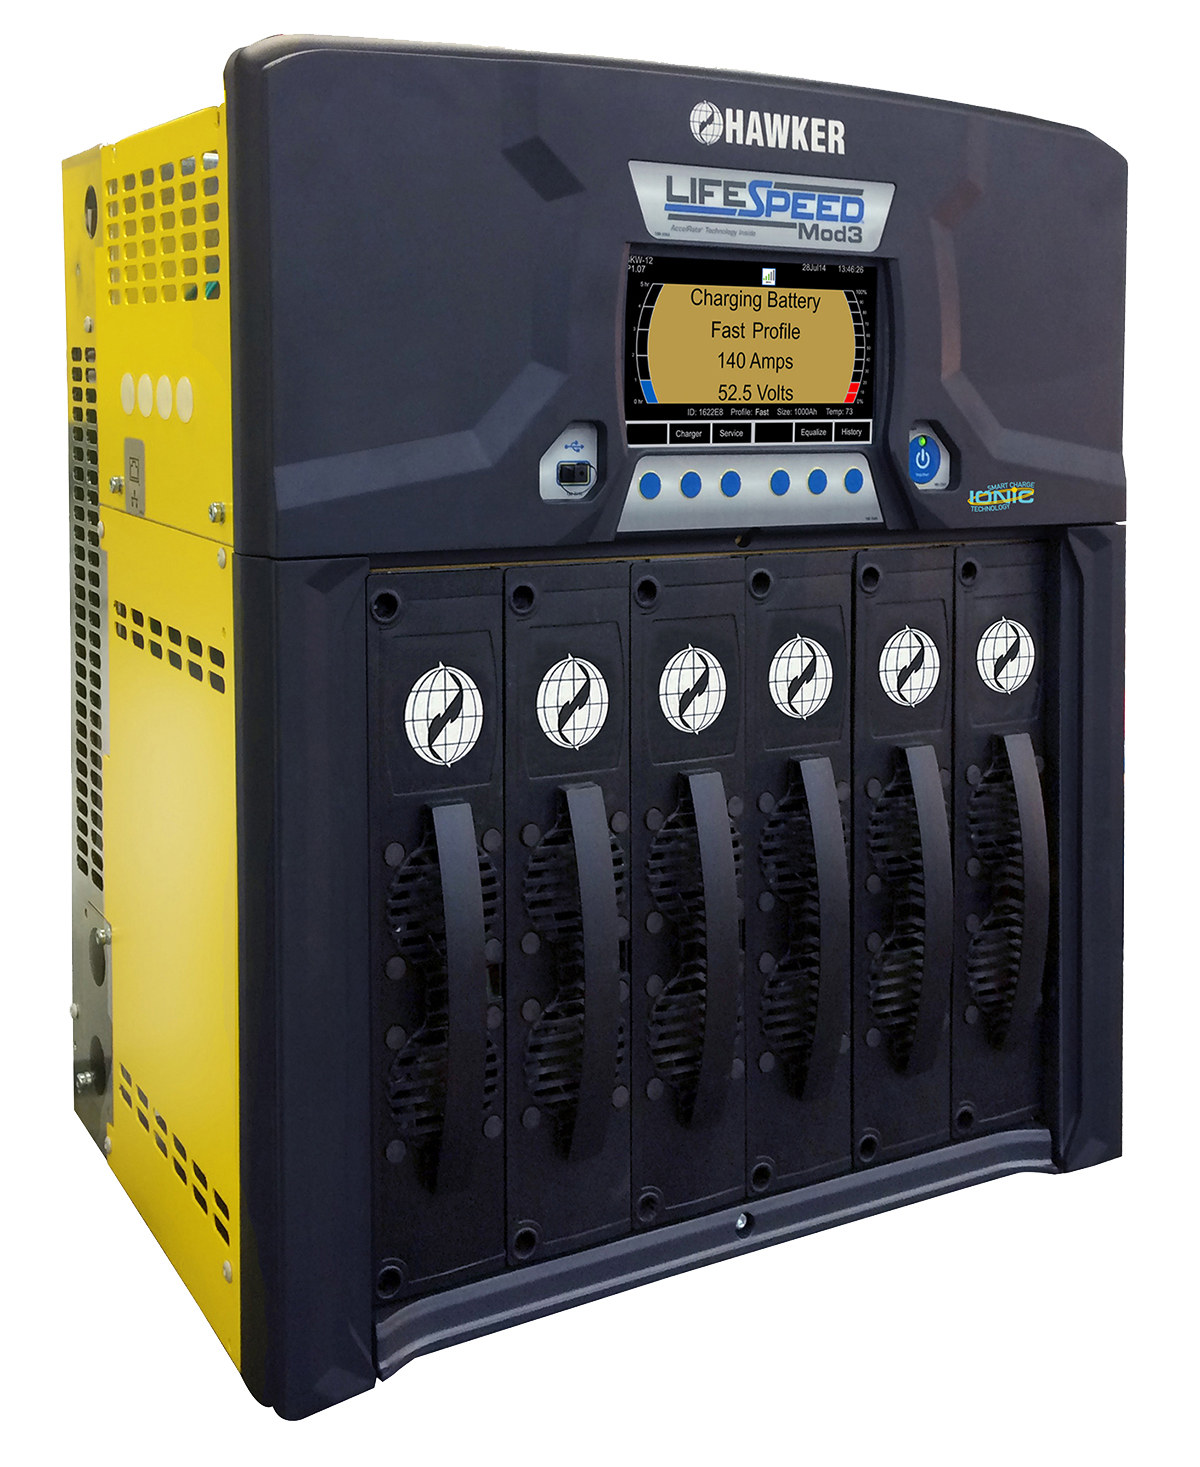 motive power chargers forklift chargers oldham batteries canada inc rh oldham ca Hawker Battery Specifications hawker powertech battery charger manual